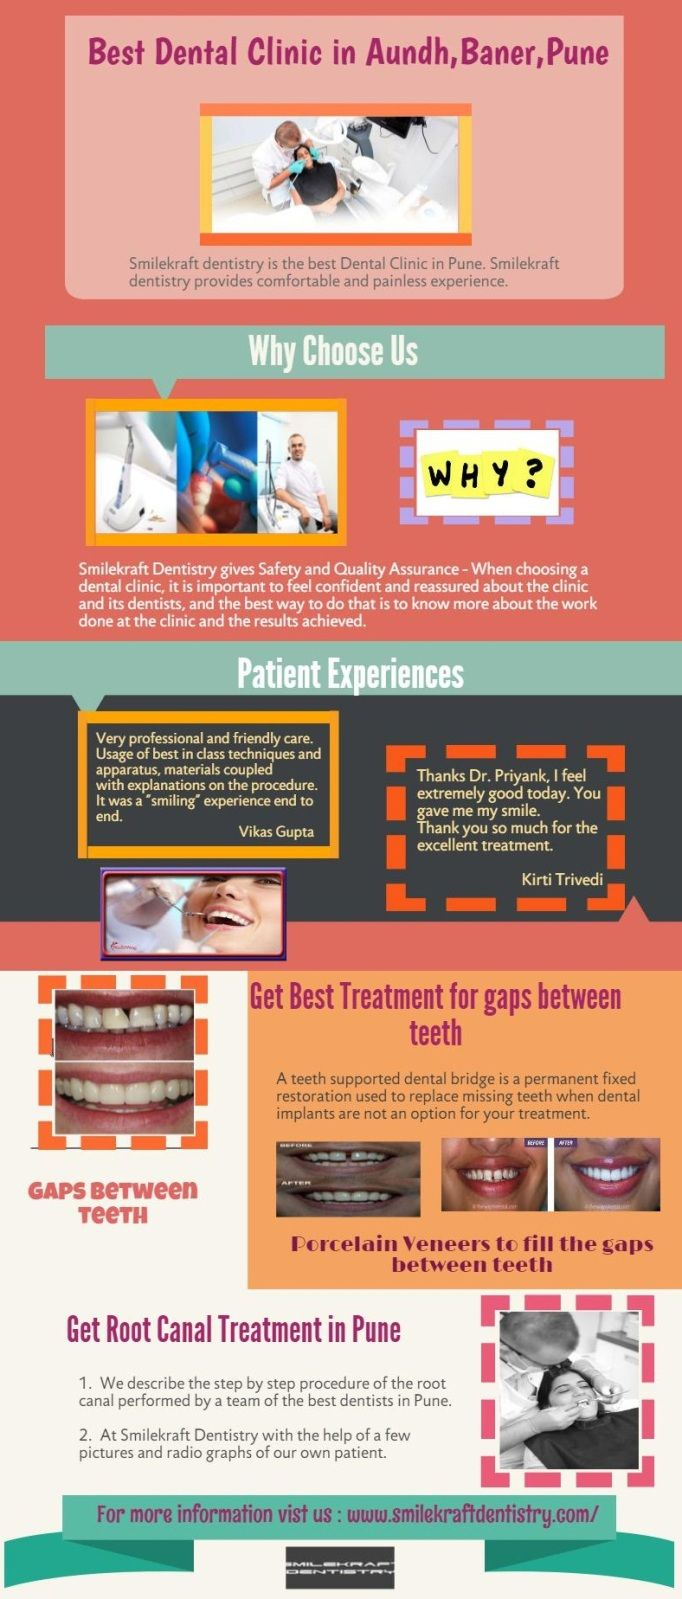 Smilekraft Dentistry offers the best of dental treatments in Pune, India, like Smile Makeovers, dental implants, root canal treatments at a reasonable cost and is renowned for it's Expert Cosmetic Dental treatments. Book your appointment today! http://www.smilekraftdentistry.com/